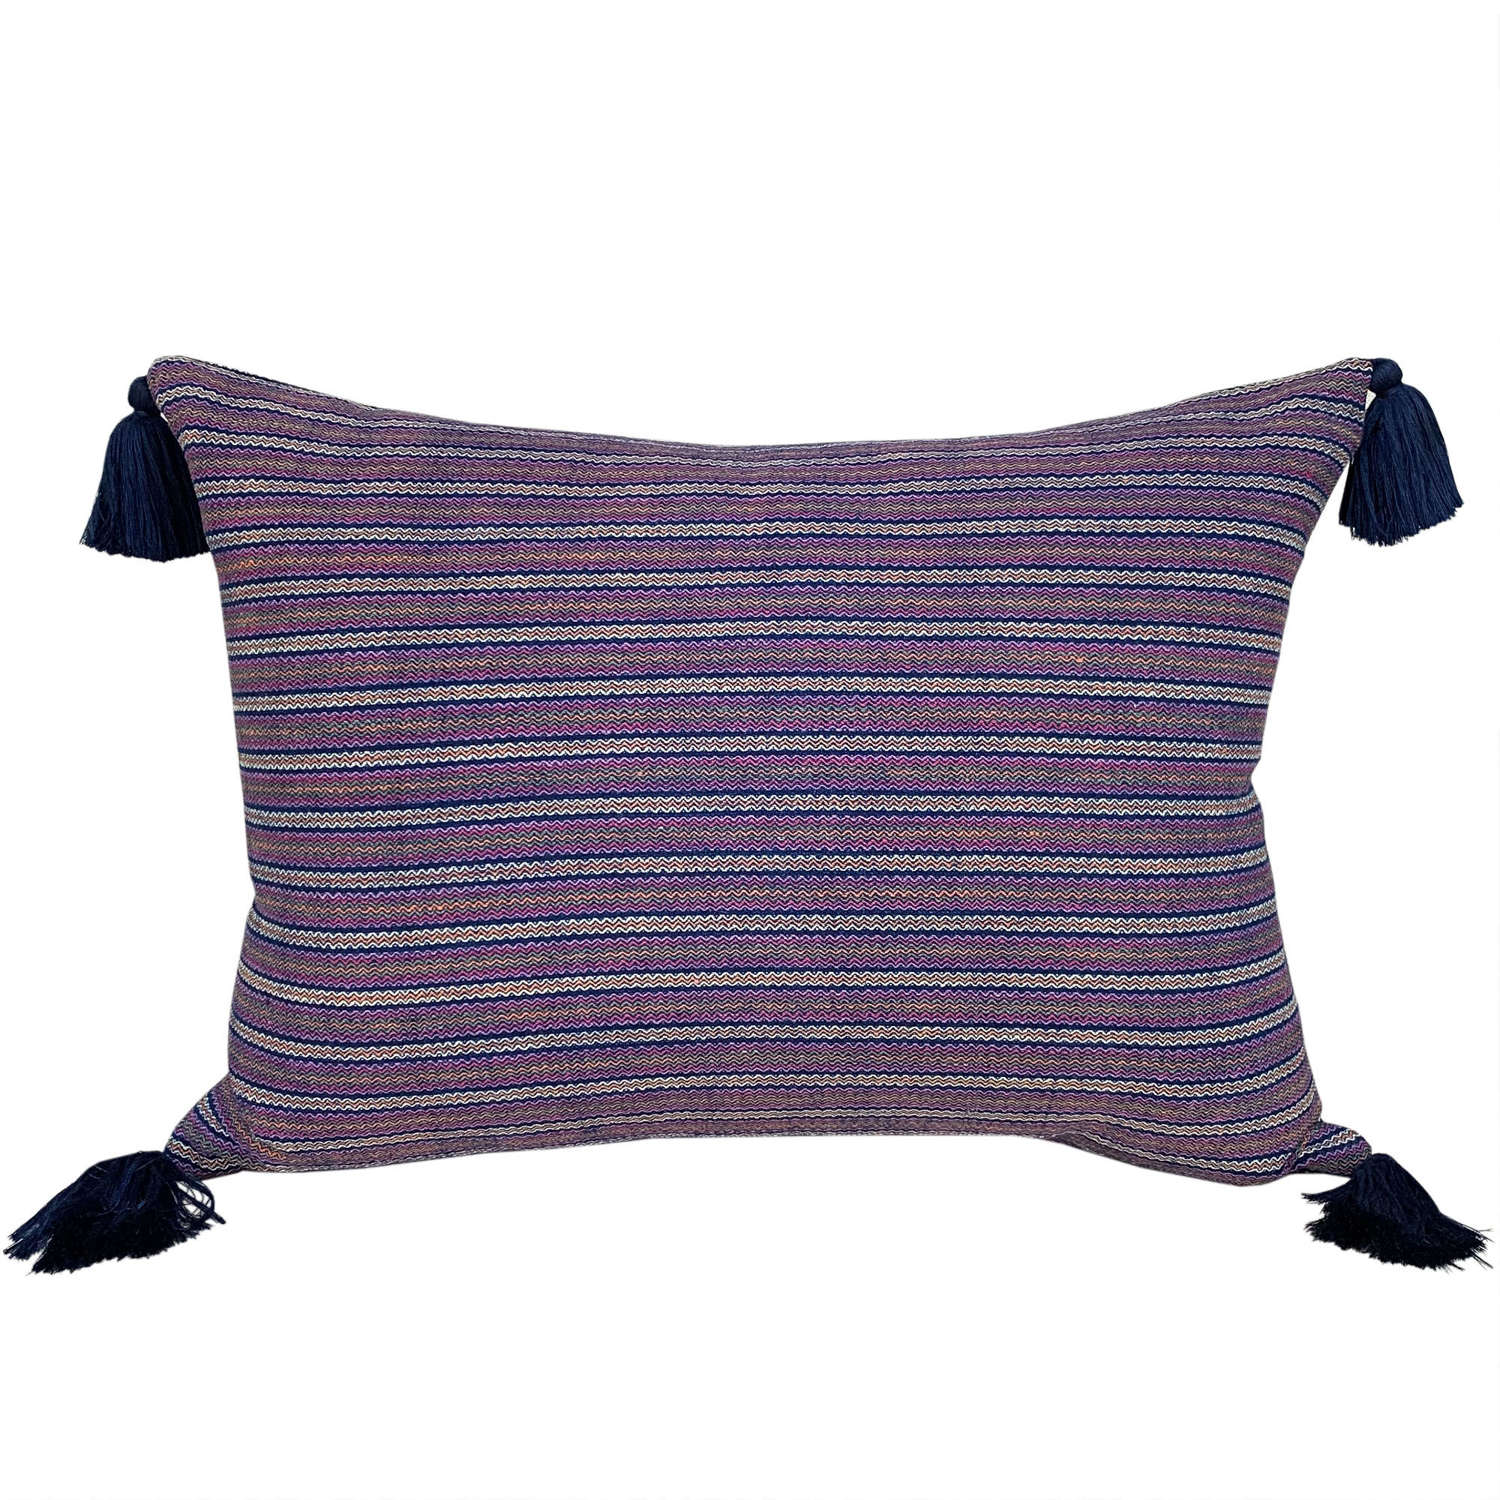 Songjiang cushions with tassels